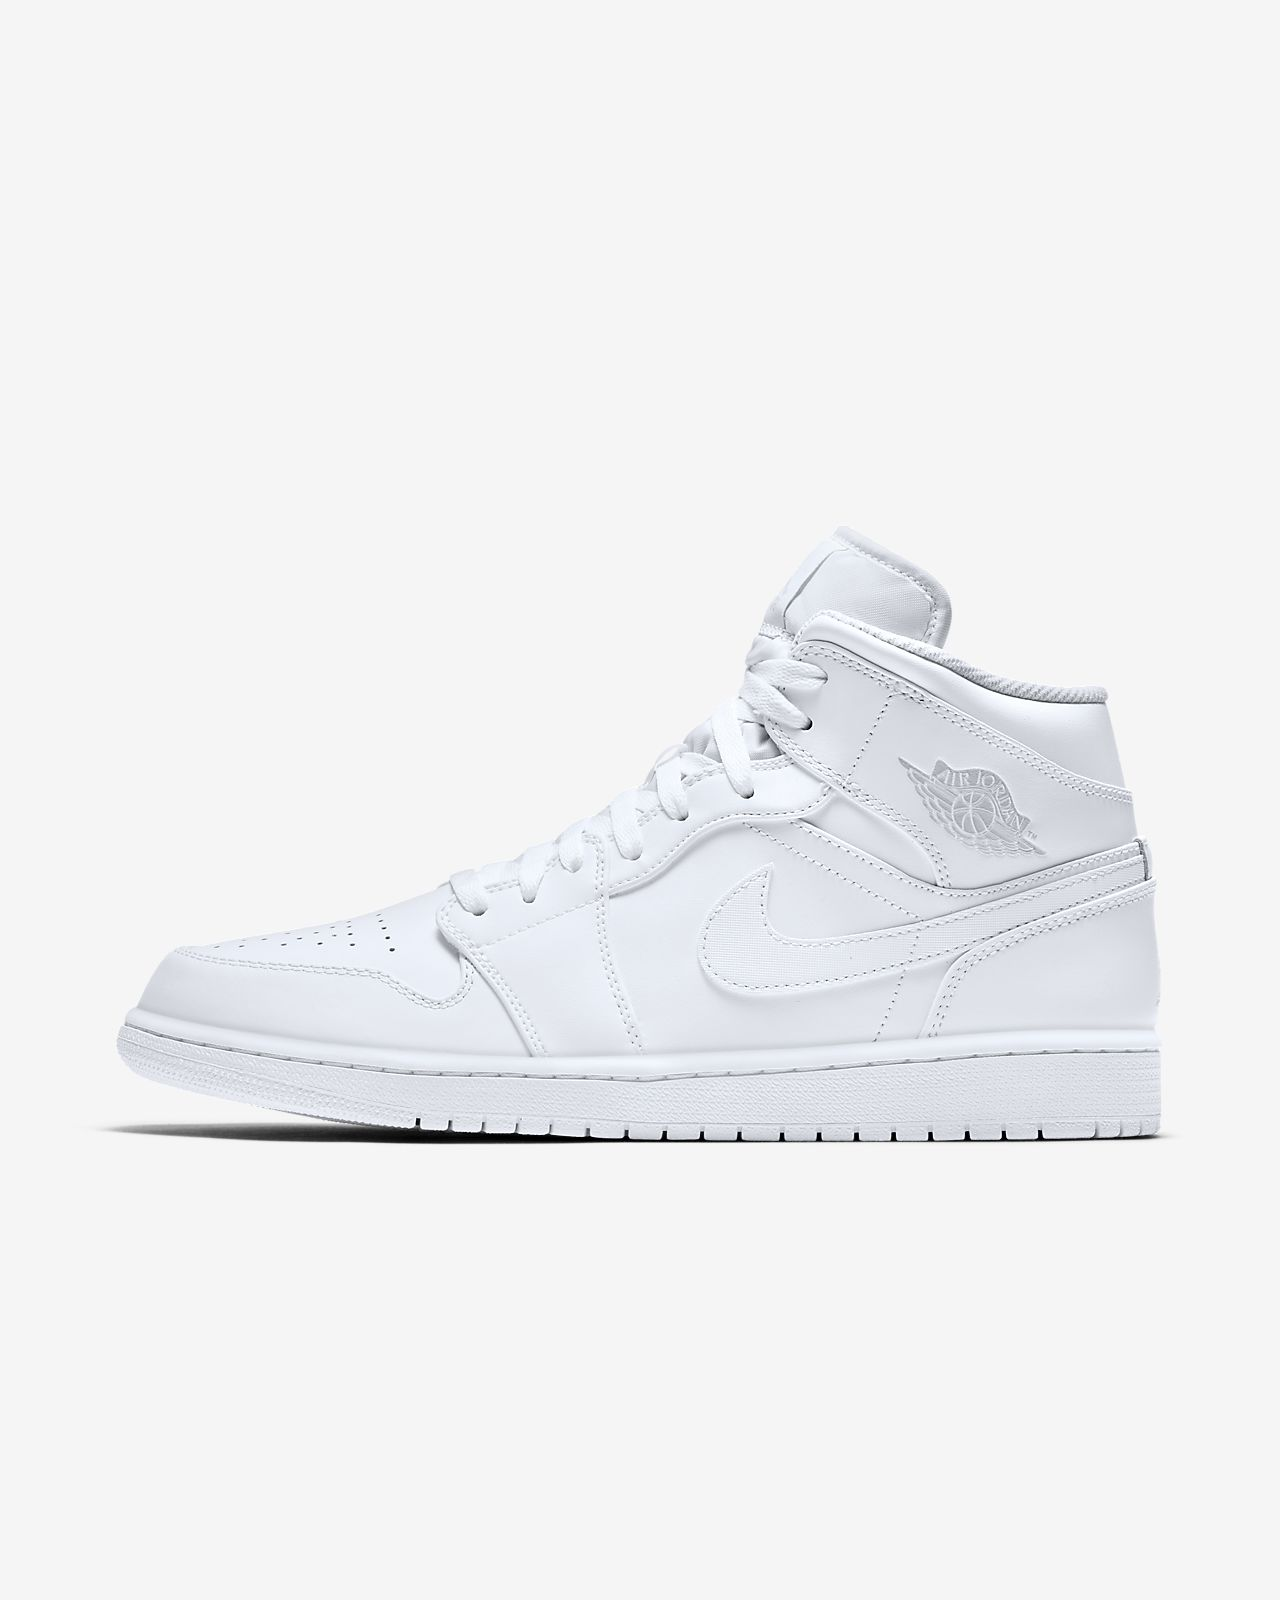 nike air jordan 1 mid white nz